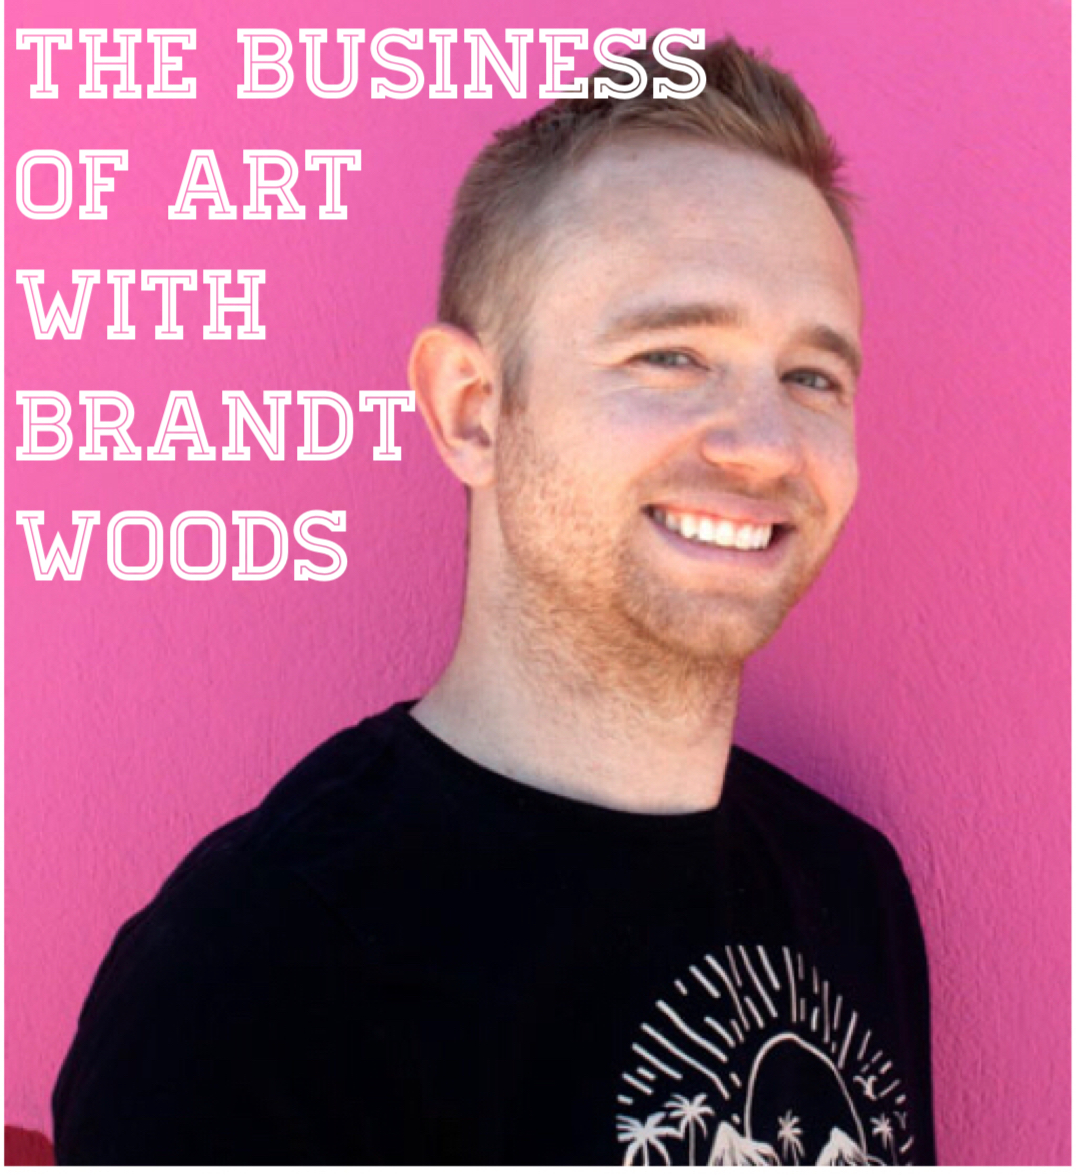 Brandt Woods poses by a title that states The business of art with Brandt Woods